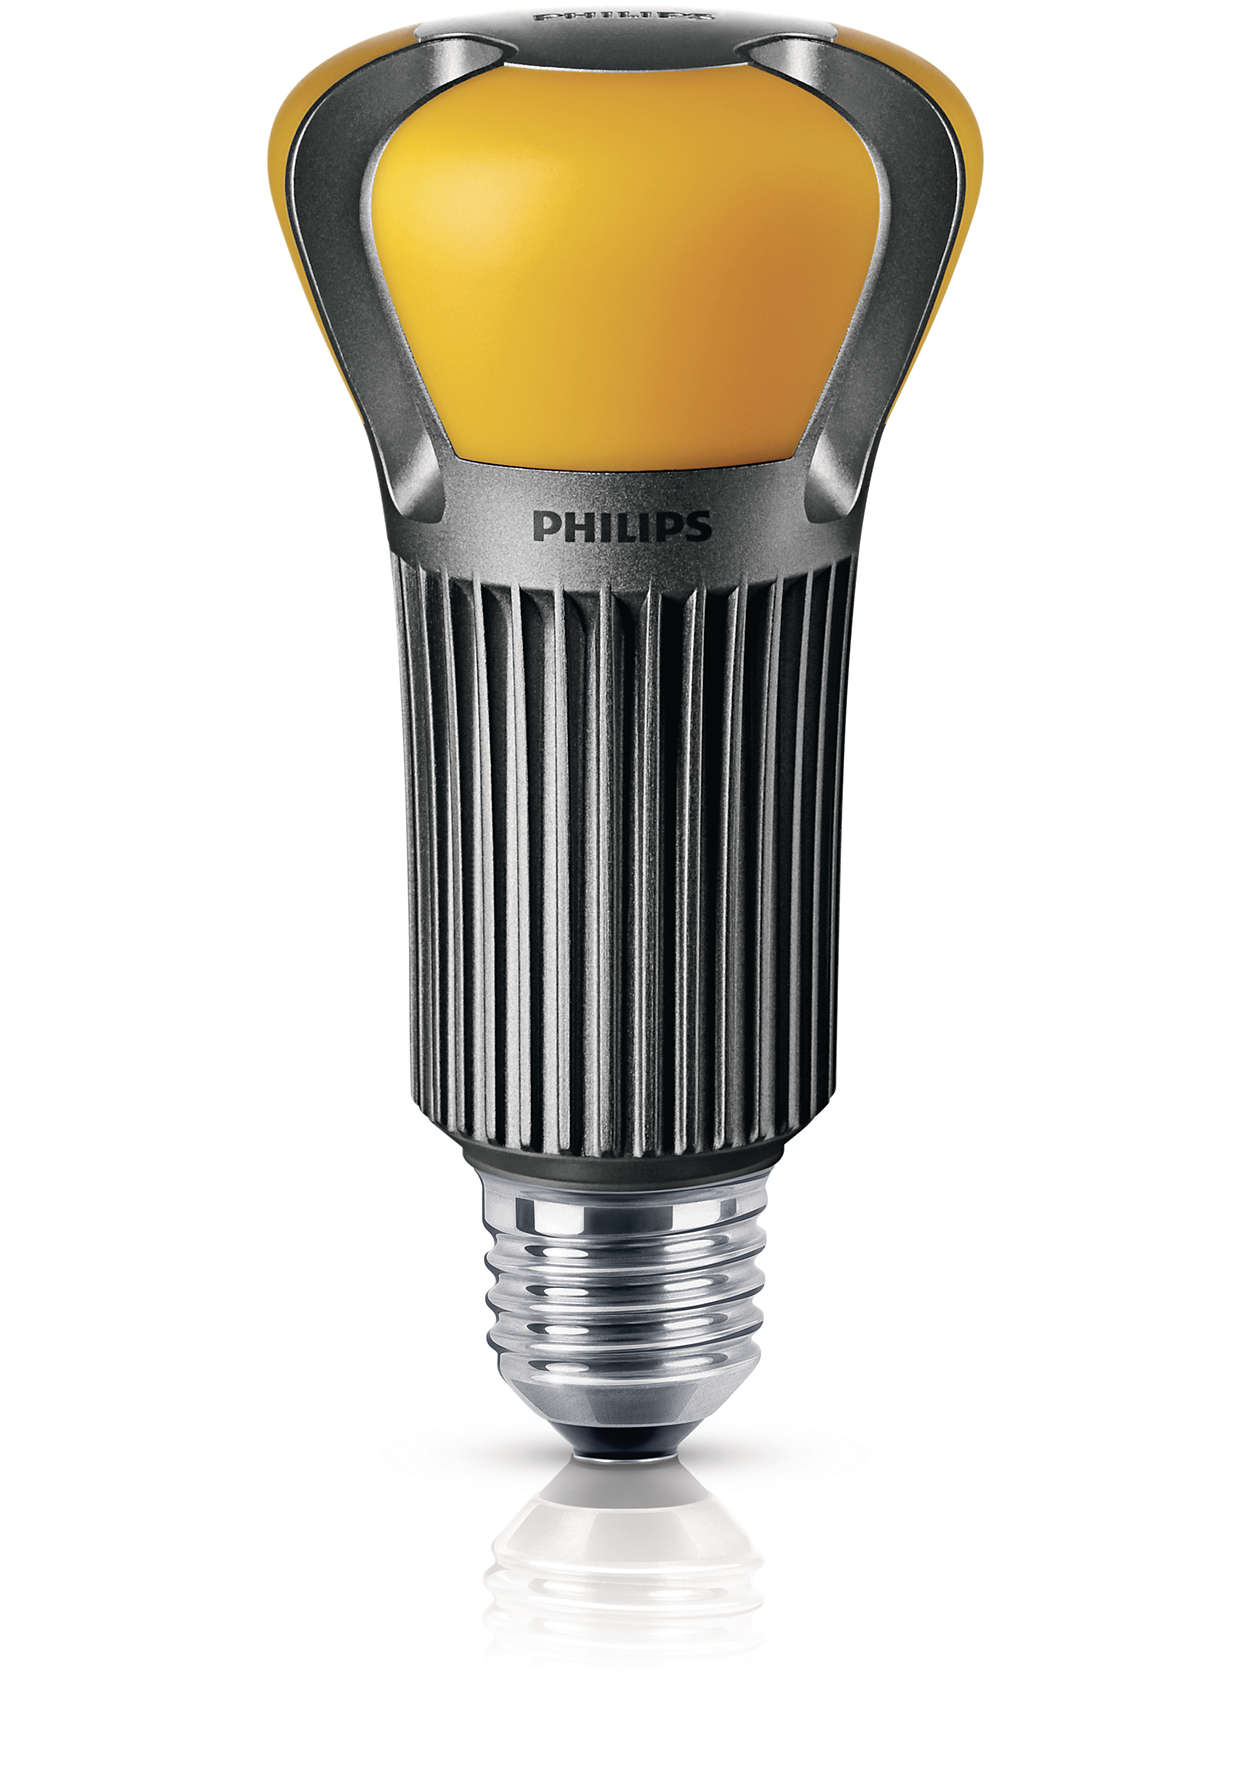 LED Lampe (dimmbar) 8718291192947 | Philips